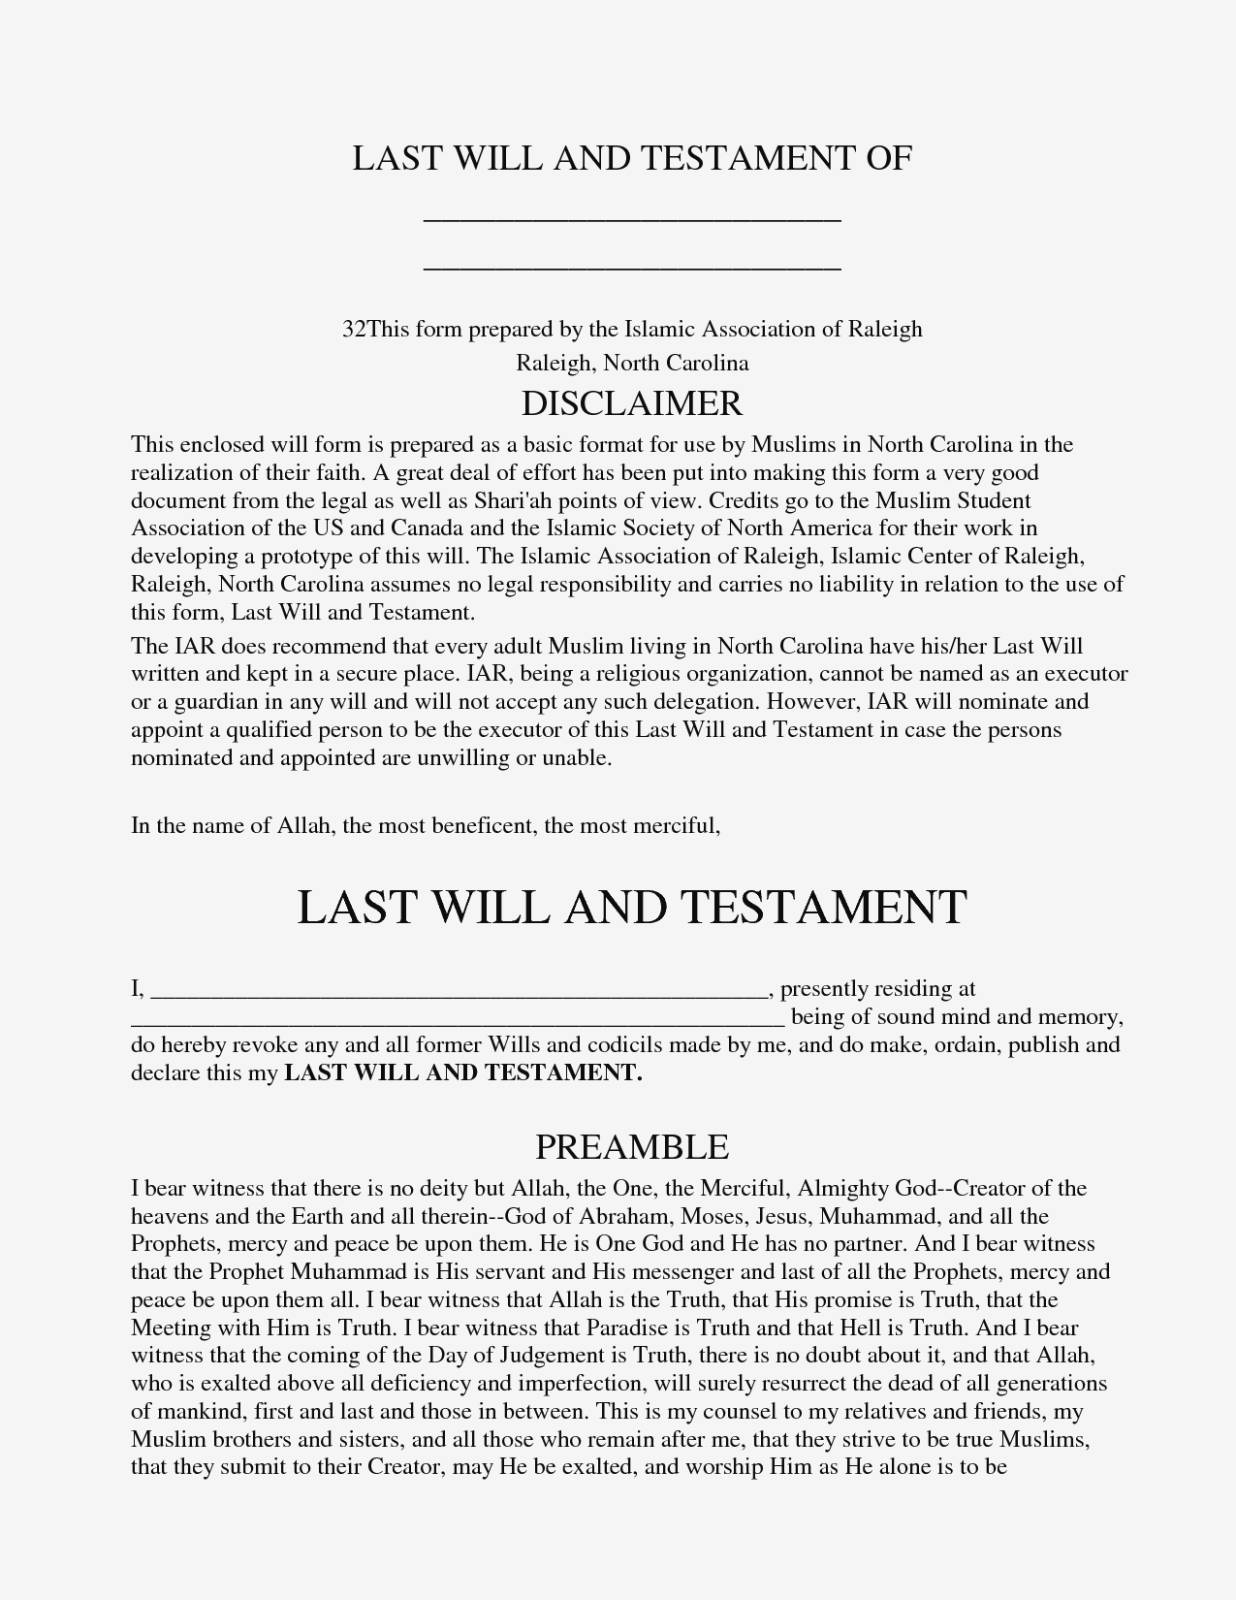 Microsoft Word Templates For Wills